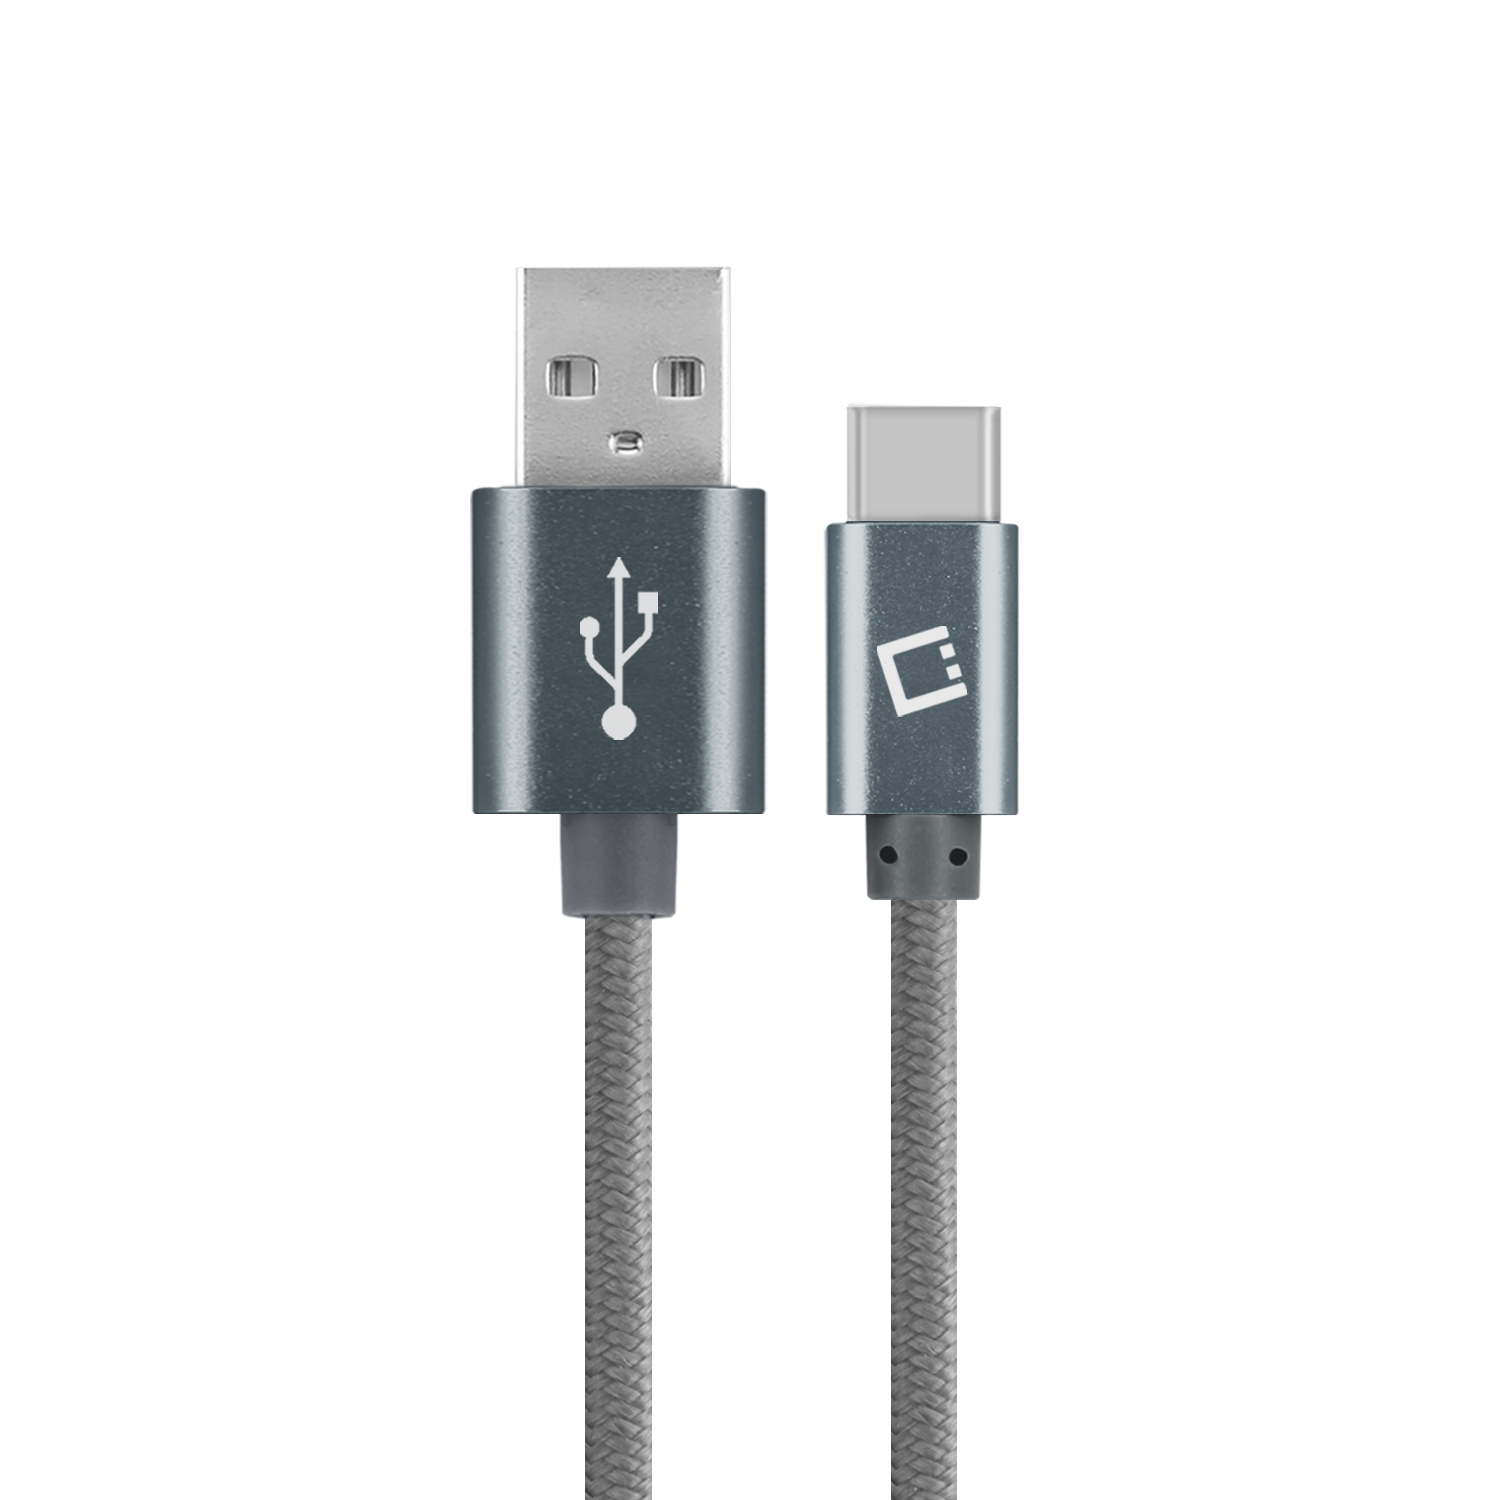 Samsung Galaxy A11 USB Type-C To Type-A Braided Data Power Cable Grey 4ft Braided